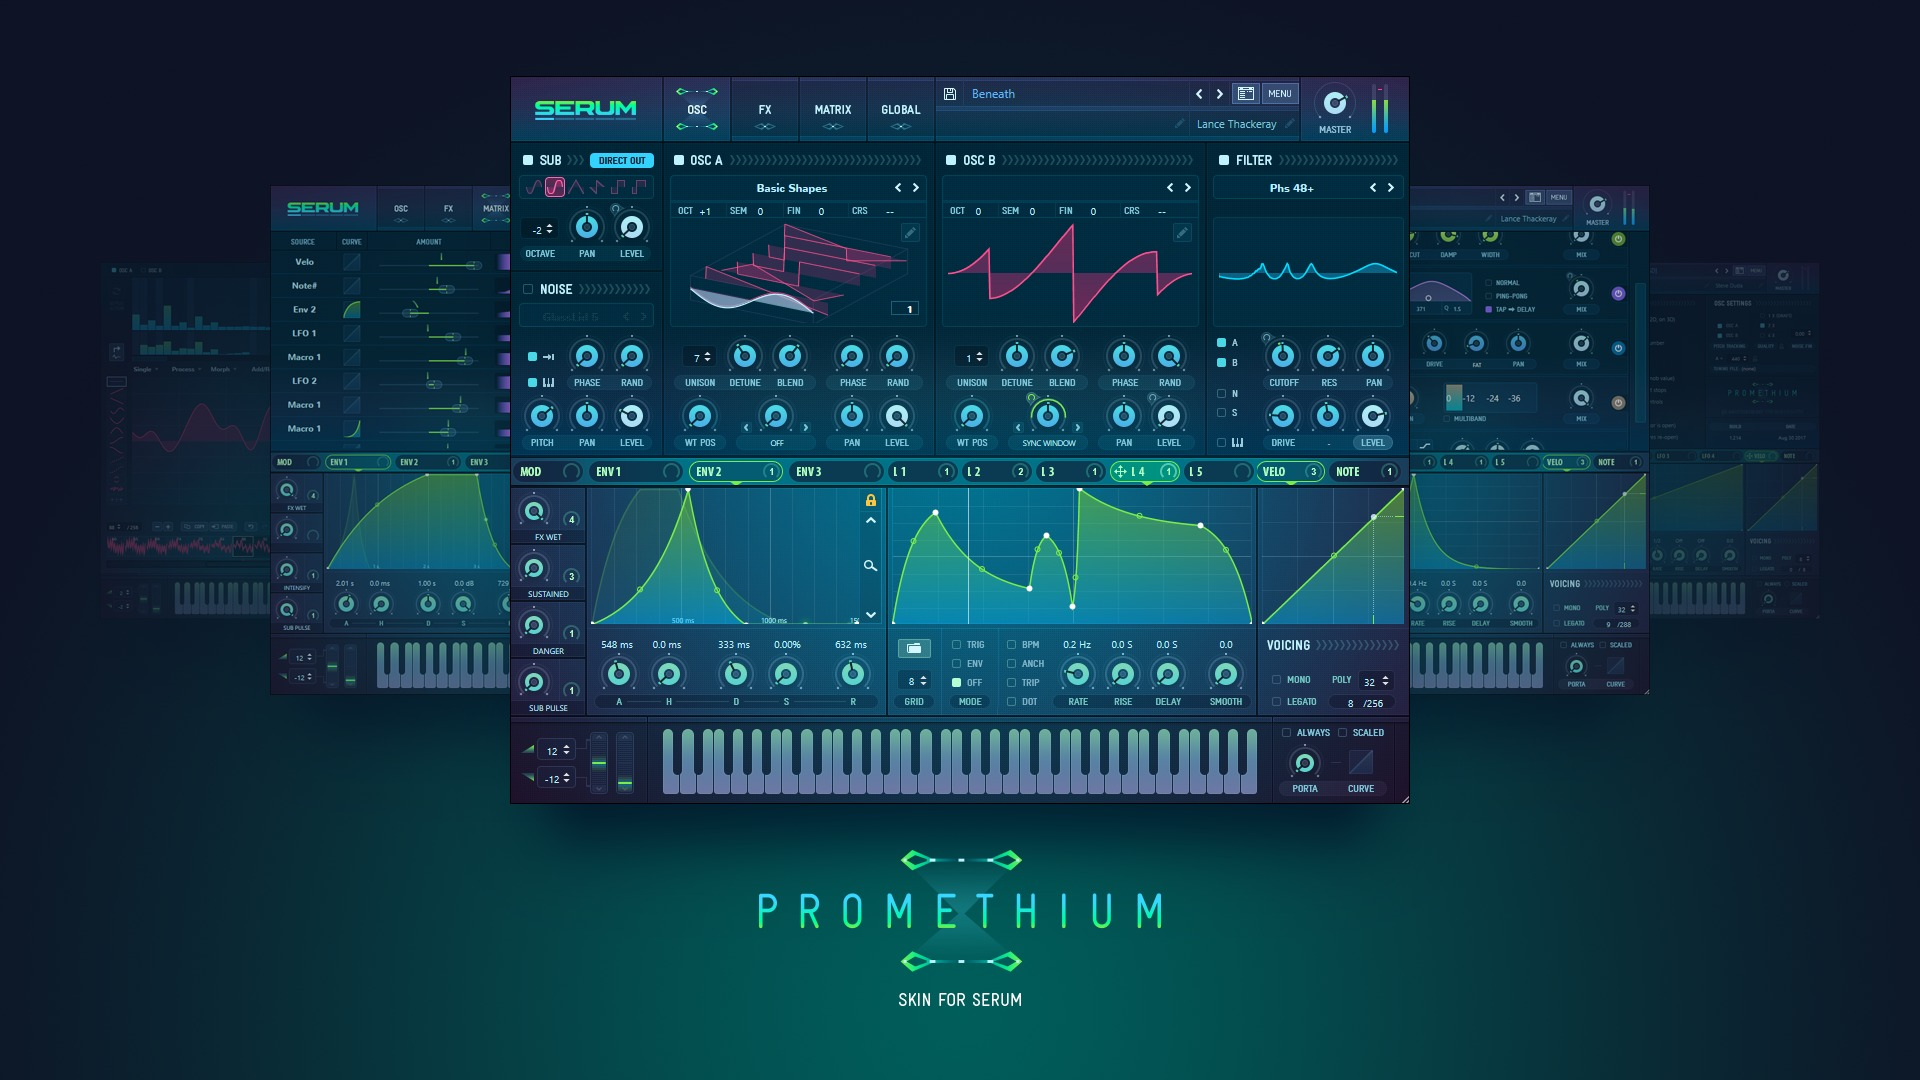 Serum synth update announced - what to expect